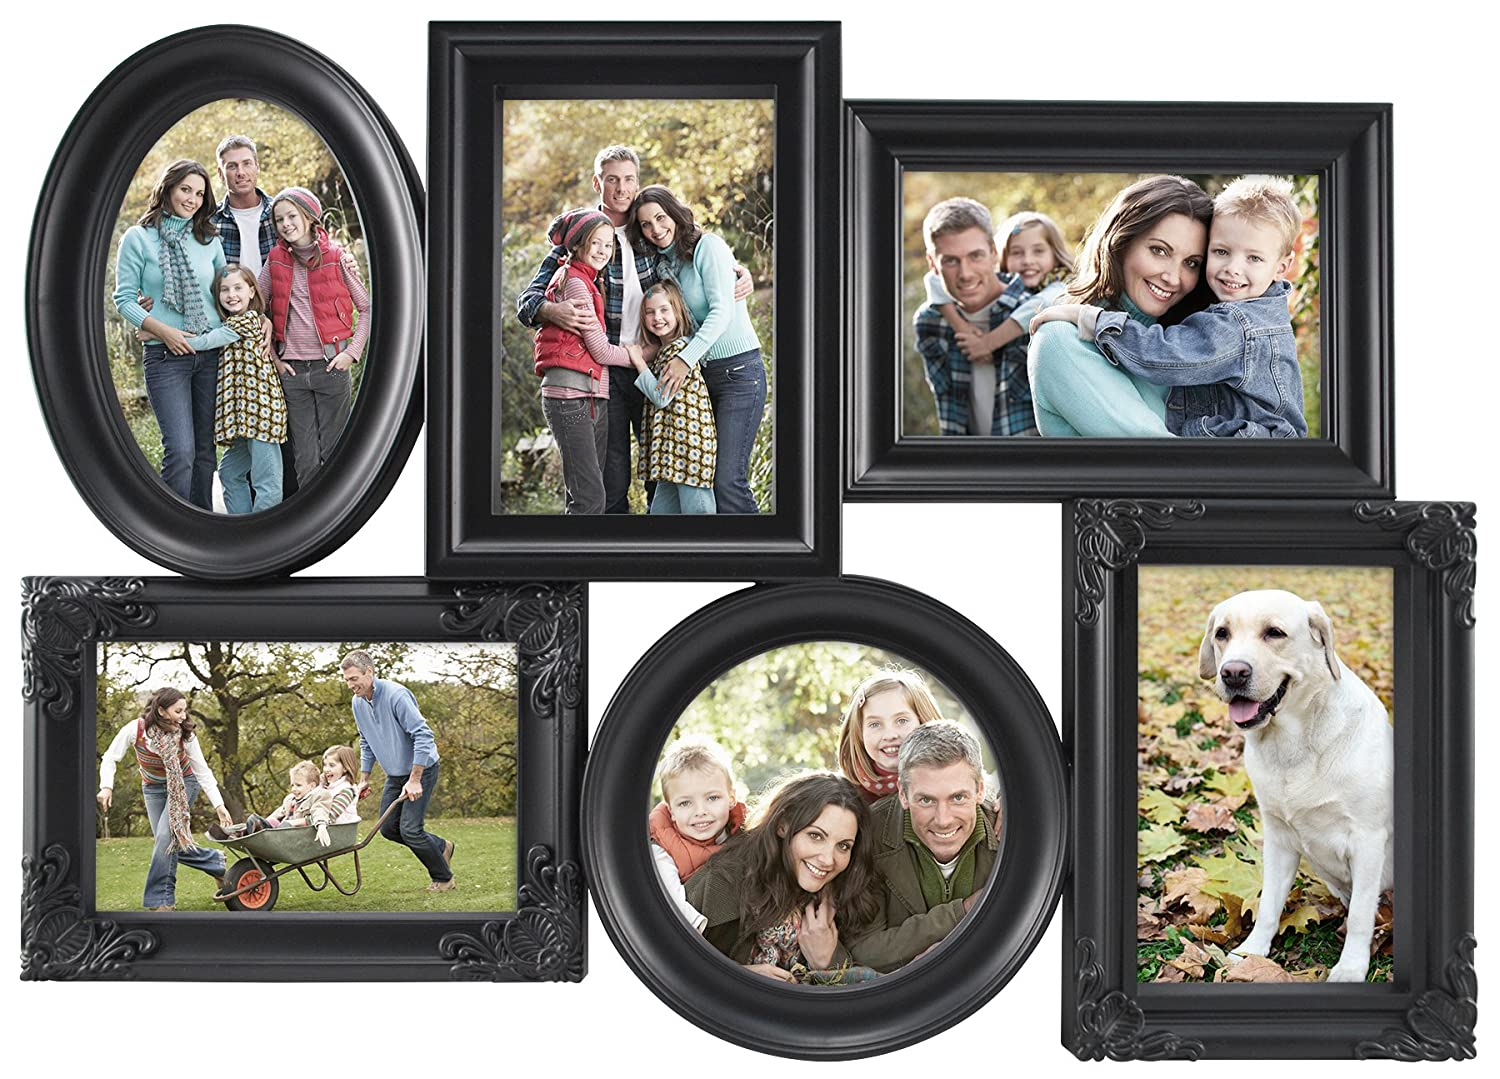 MCS 6 Openings Multi-Shaped Collage Frame with 5-4x6 Inch and 1-5x5 Inch Openings, Black (65708) MCS Industries